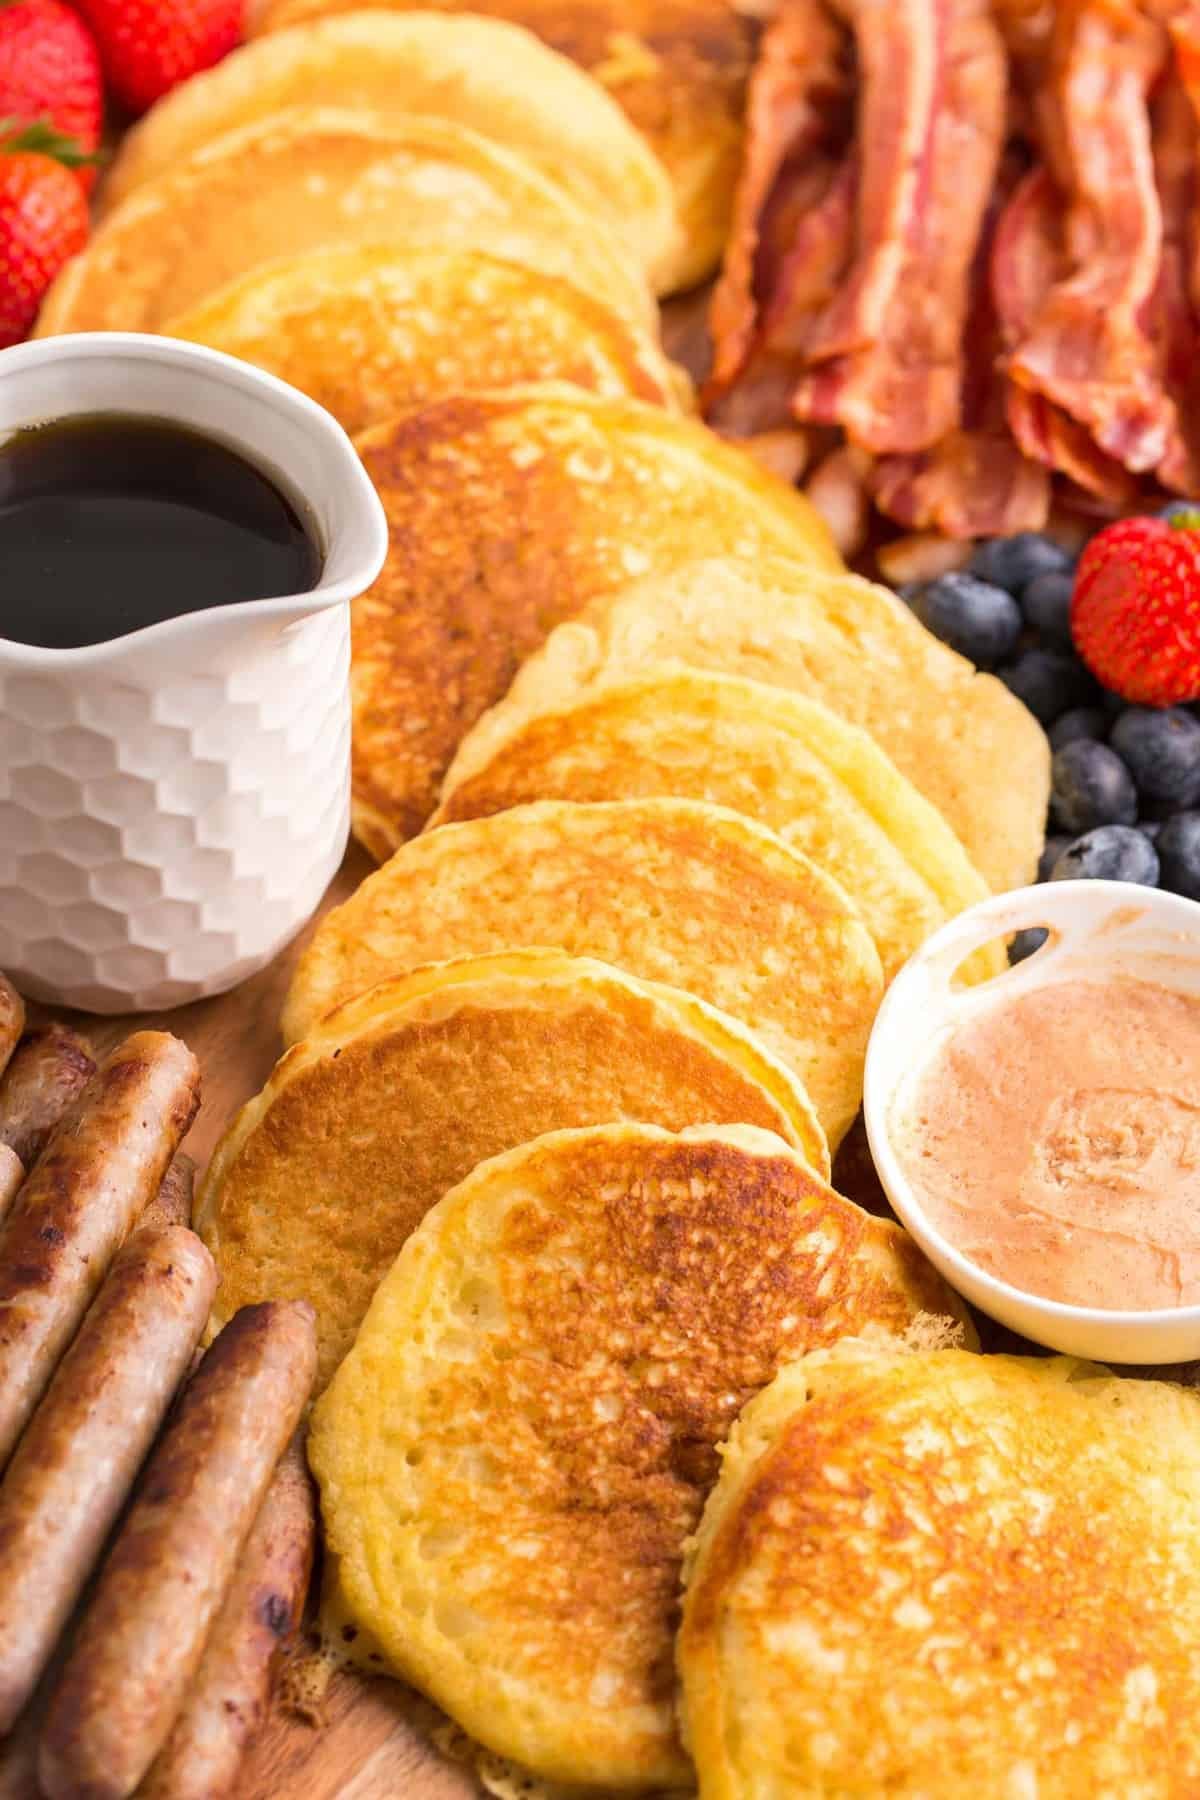 Close up of pancakes in a decorative pattern surrounded by other breakfast items.